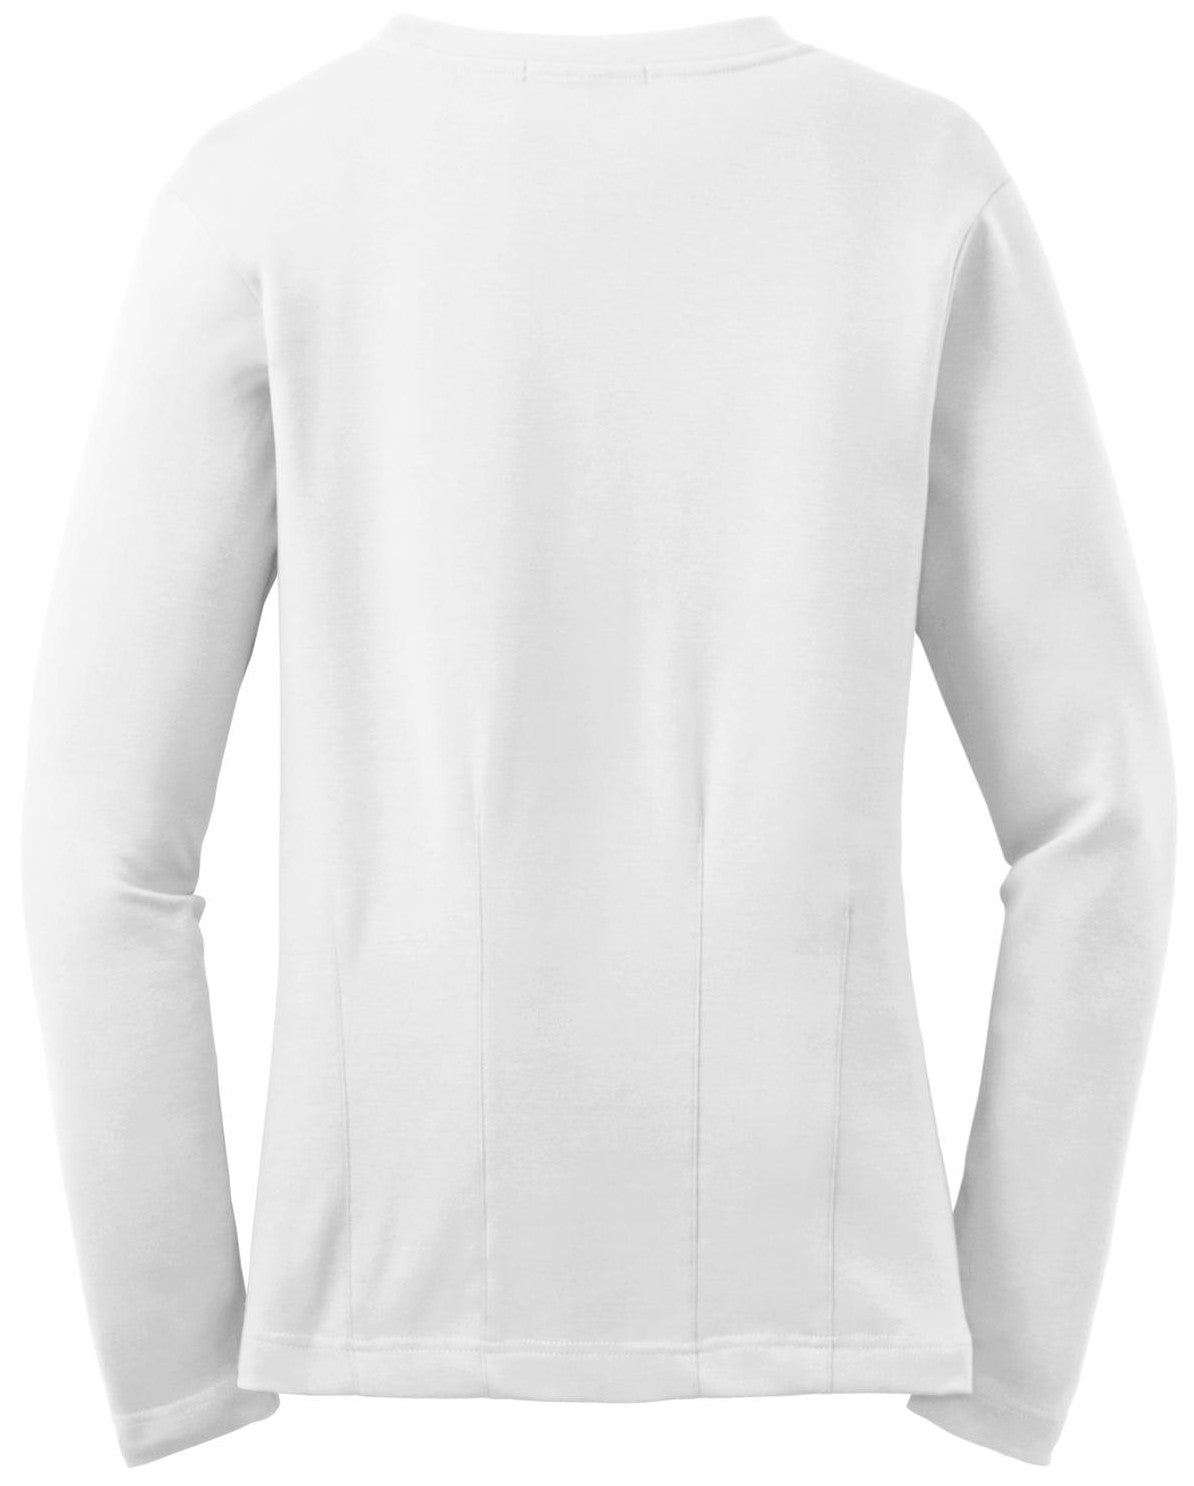 Mafoose Women's Stretch Cotton Cardigan White-Back